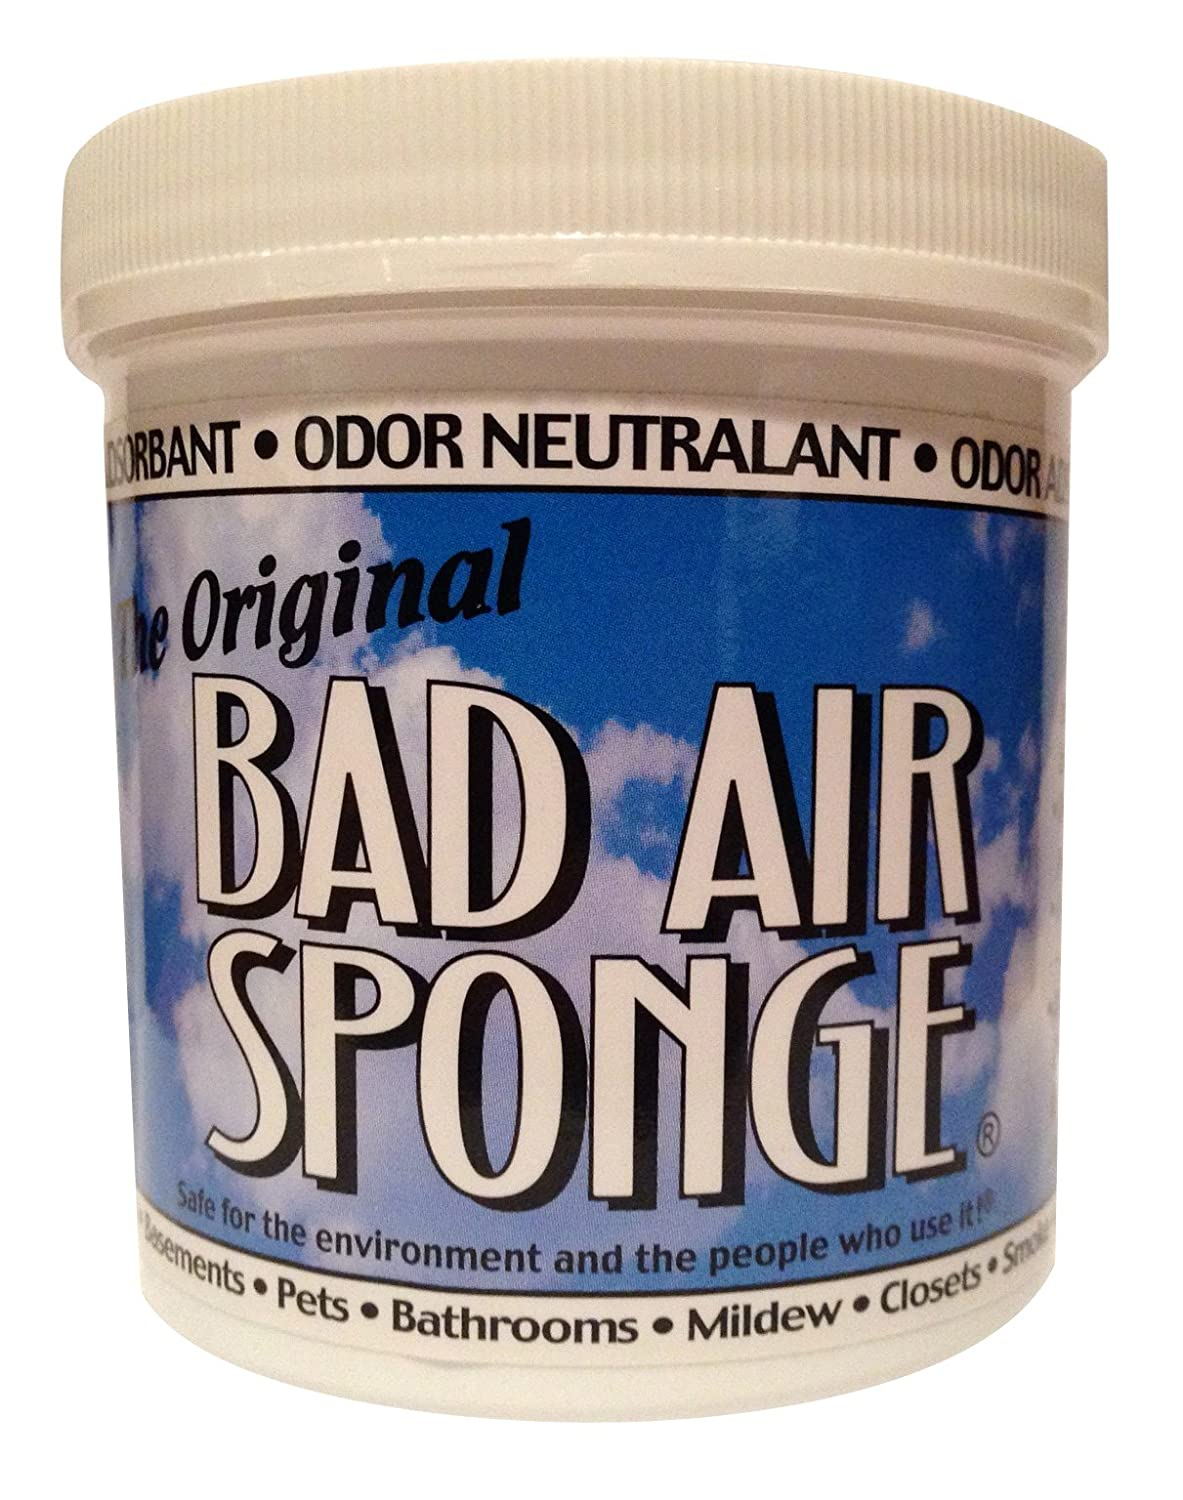 Amazoncom Bad Air Sponge The ORIGINAL Odor Absorbing Neutralant - How to get rid of urine smell in bathroom